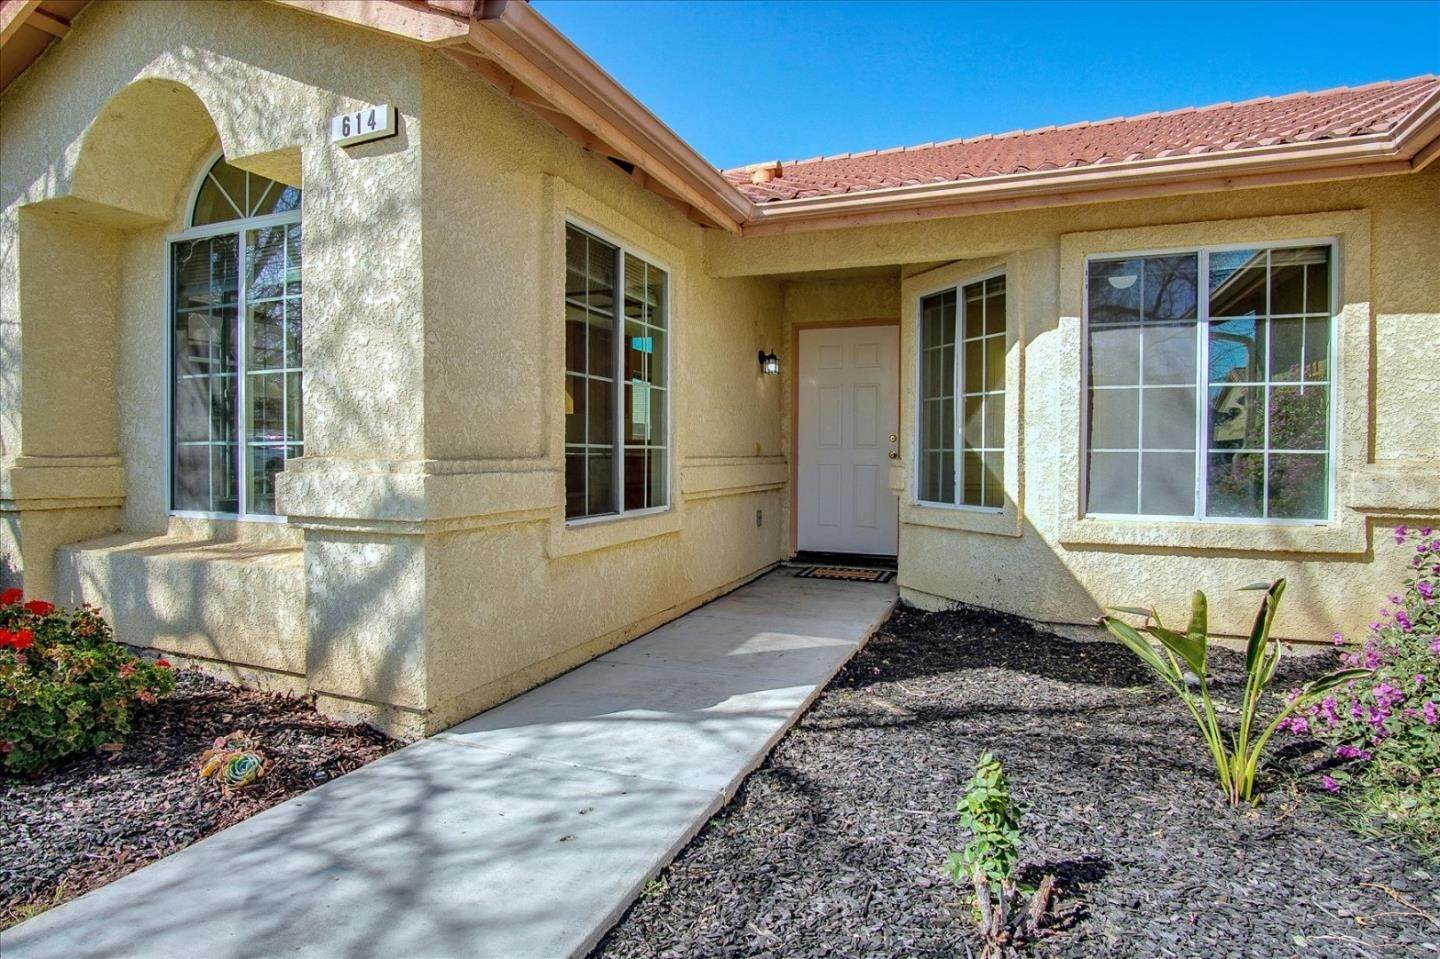 Single Family Homes for Sale at 614 Winemaker Street Los Banos, California 93635 United States